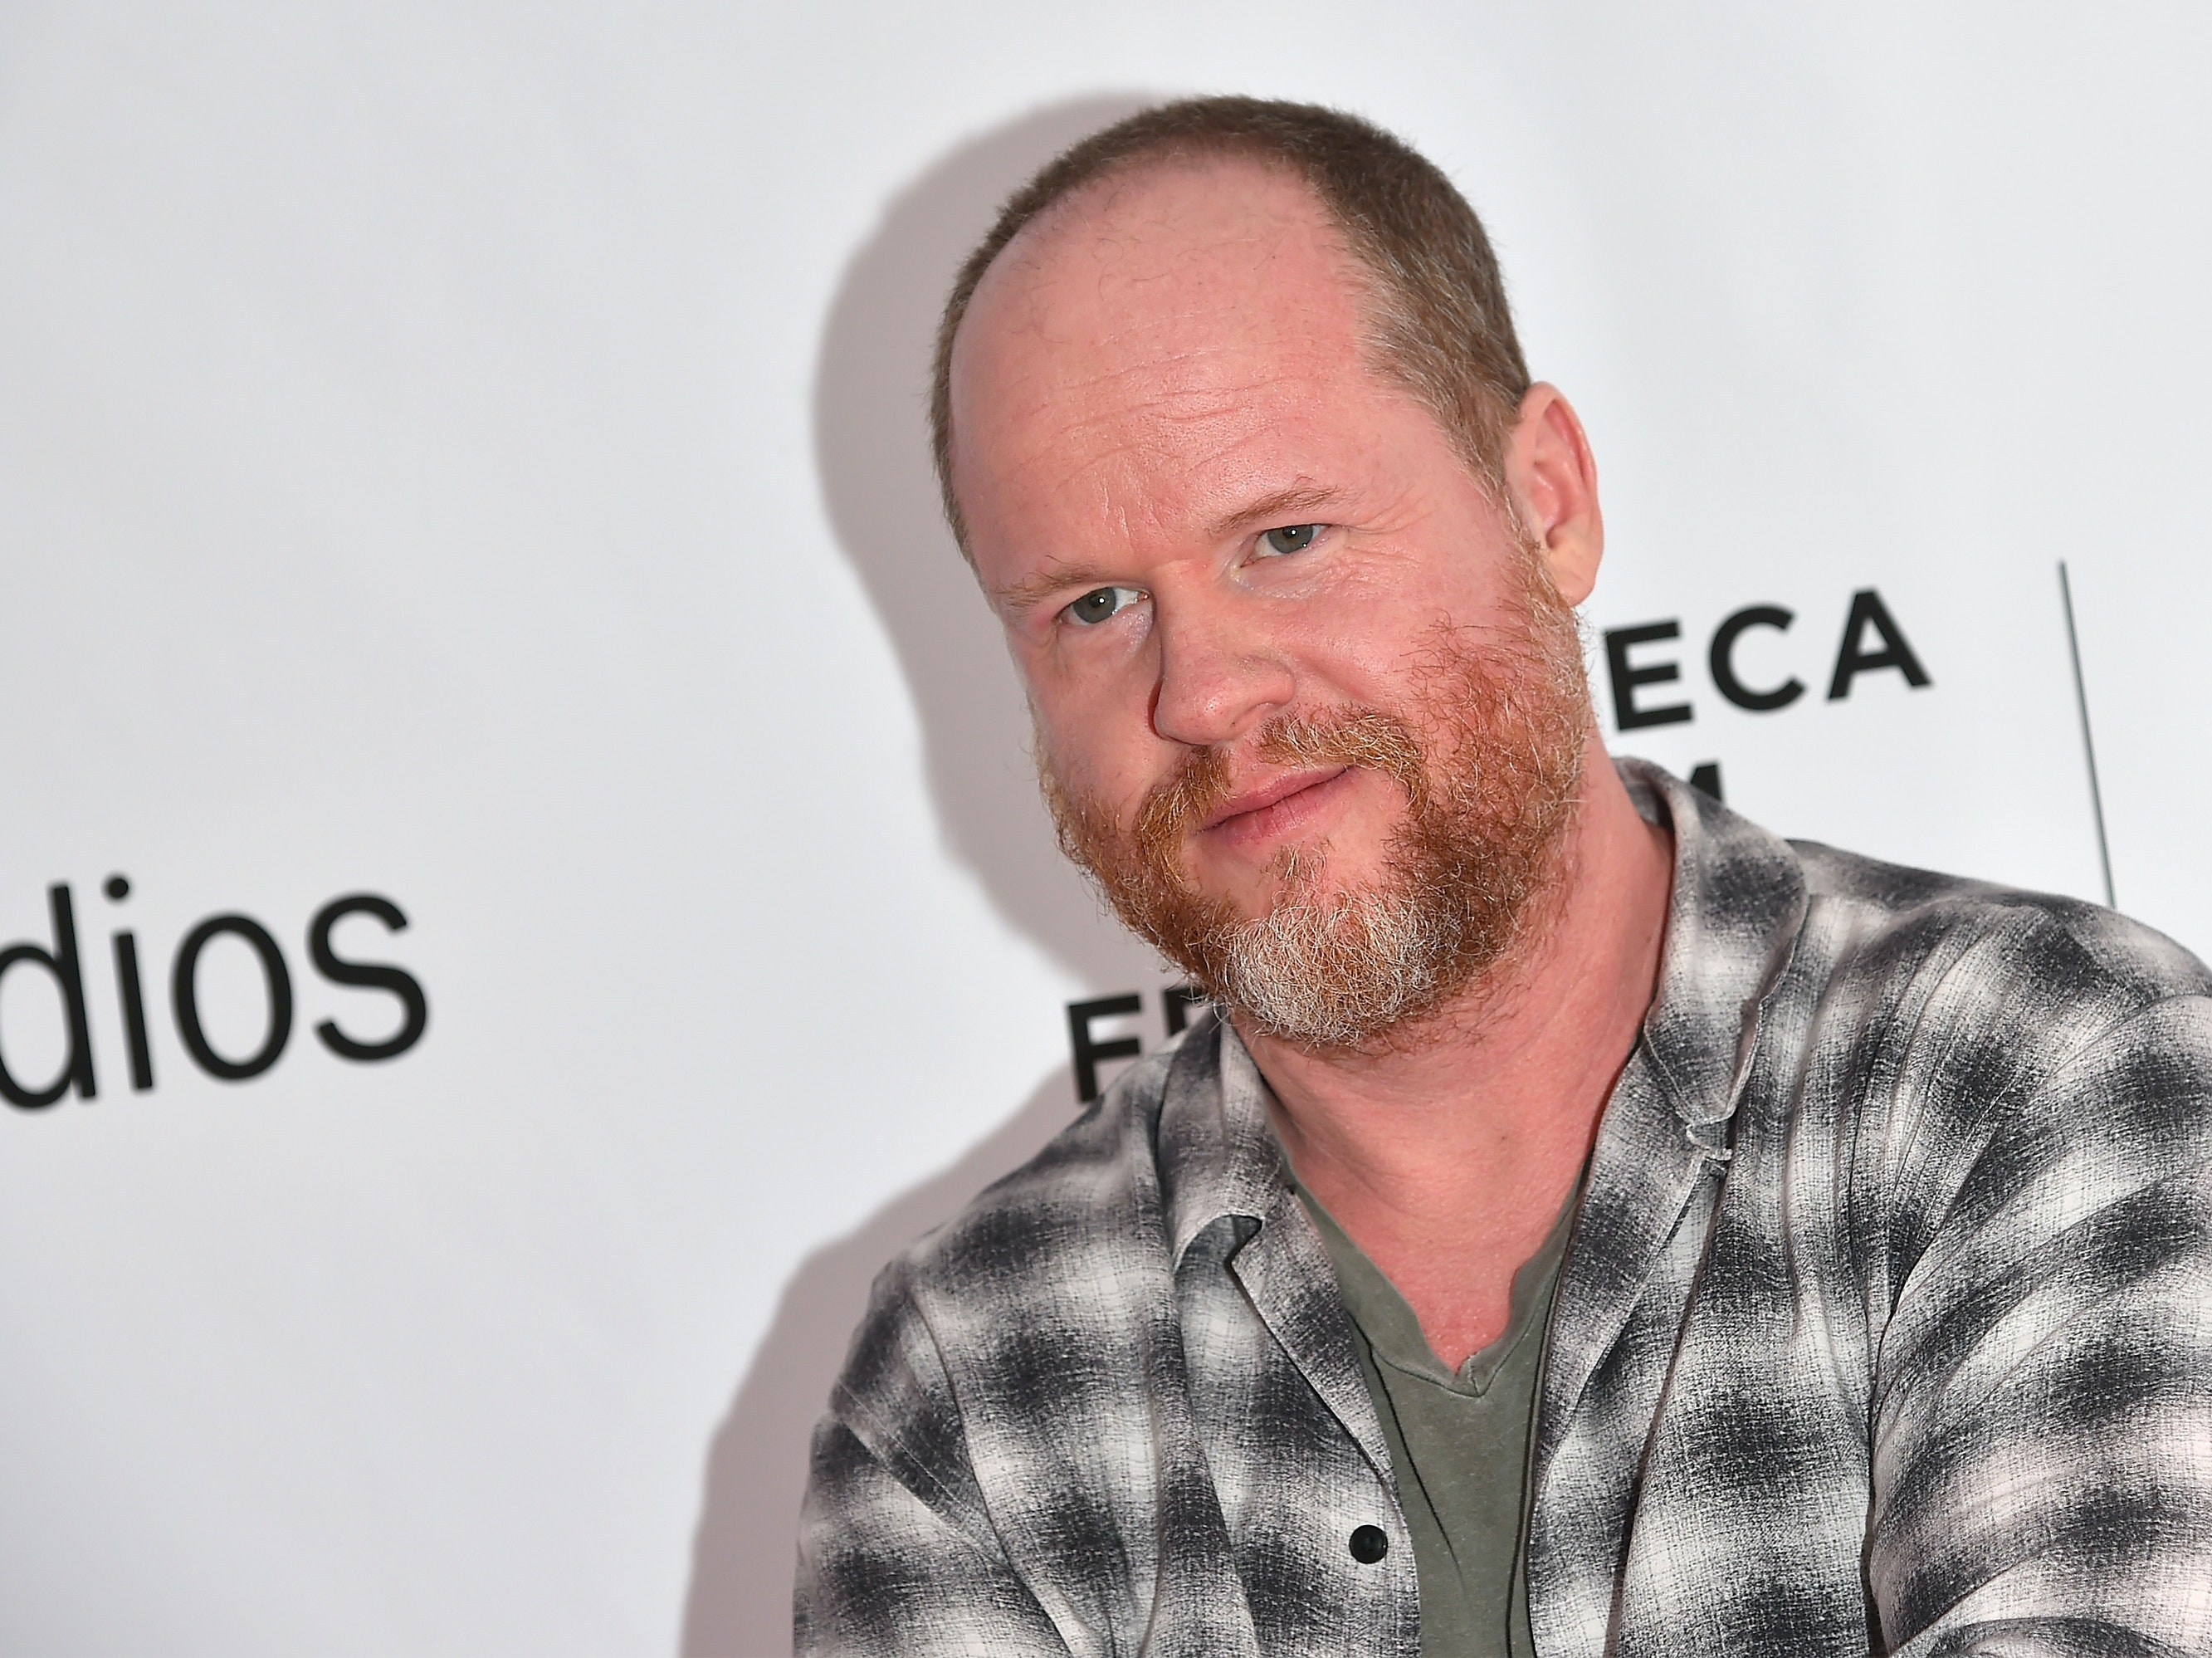 Joss Whedon Wants to Make a 'Star Wars' Movie Thanks to Rogue One